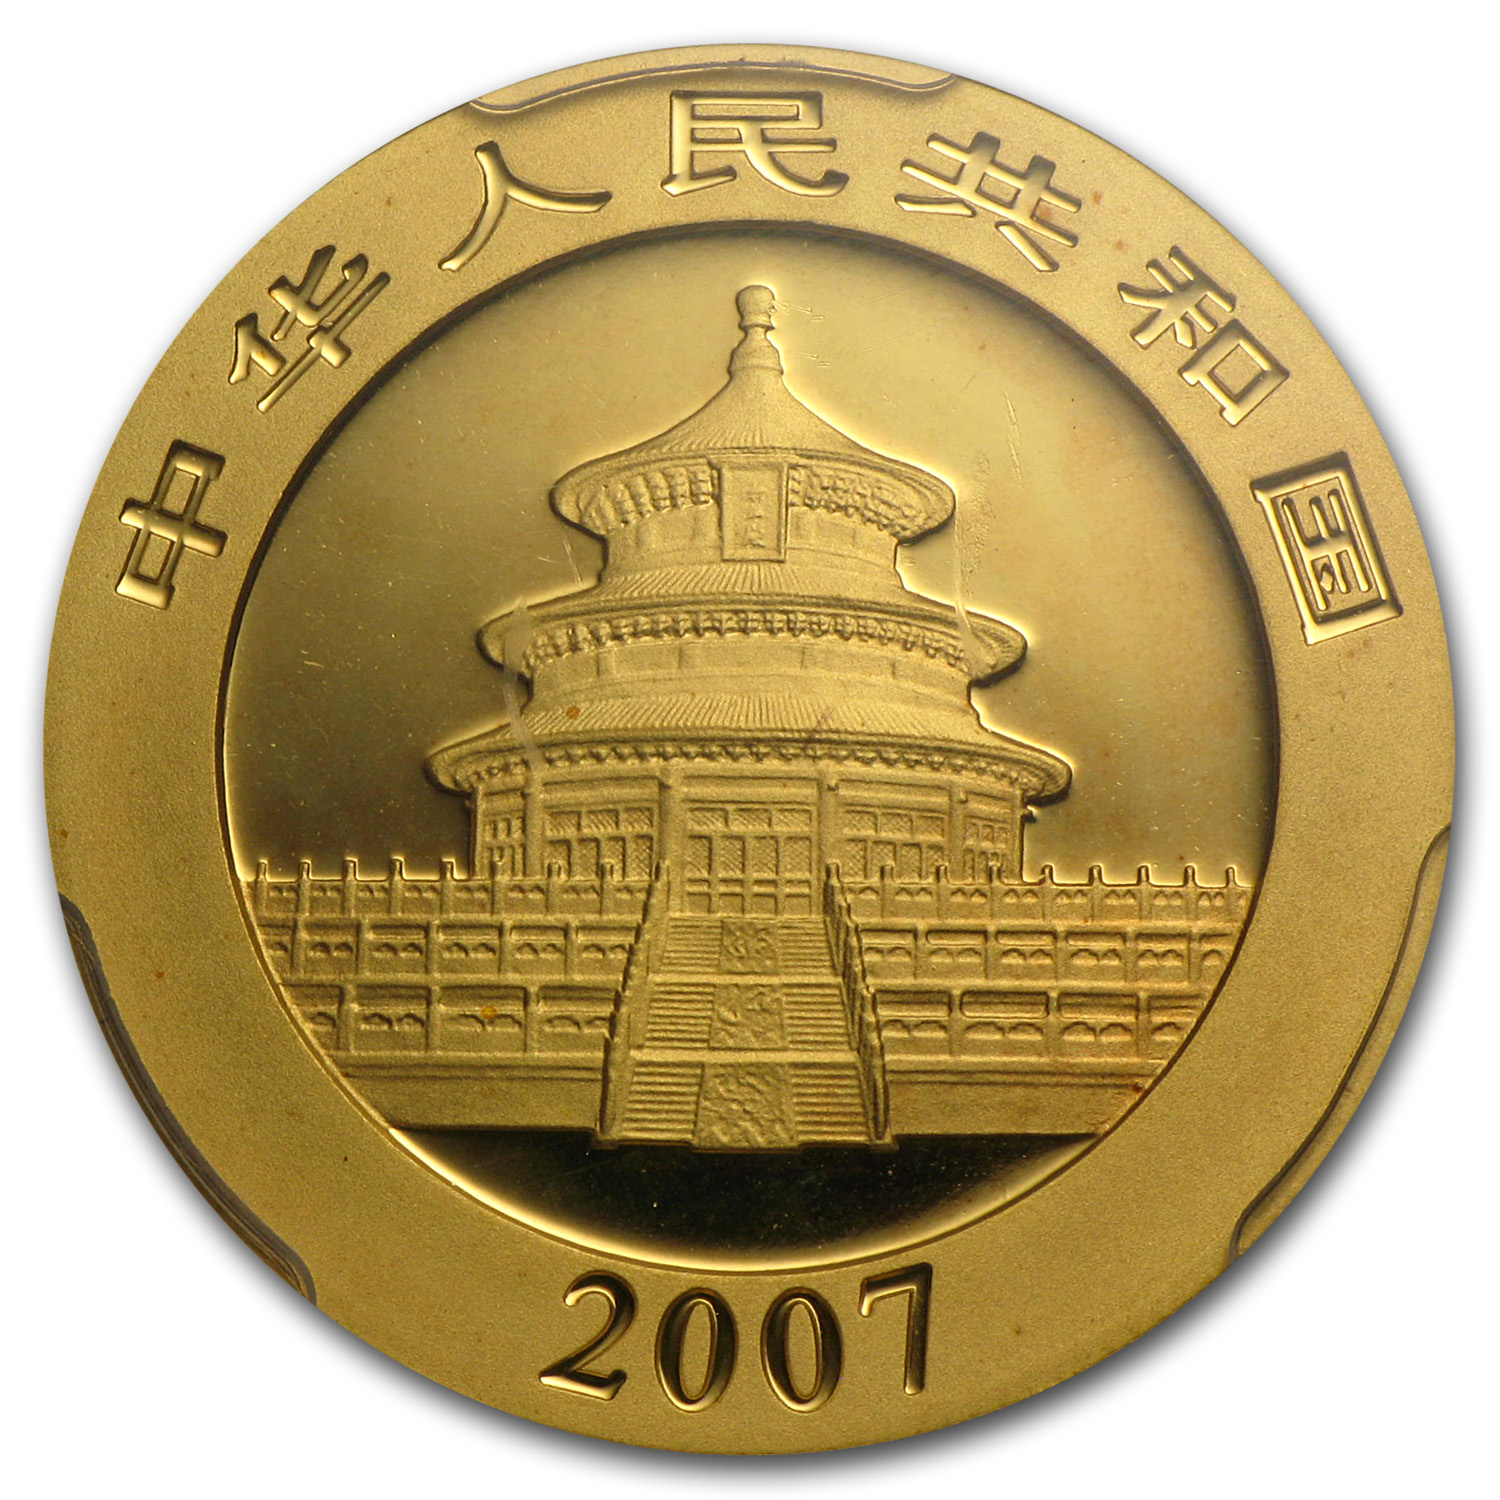 2007 China 1/2 oz Gold Panda MS-68 PCGS